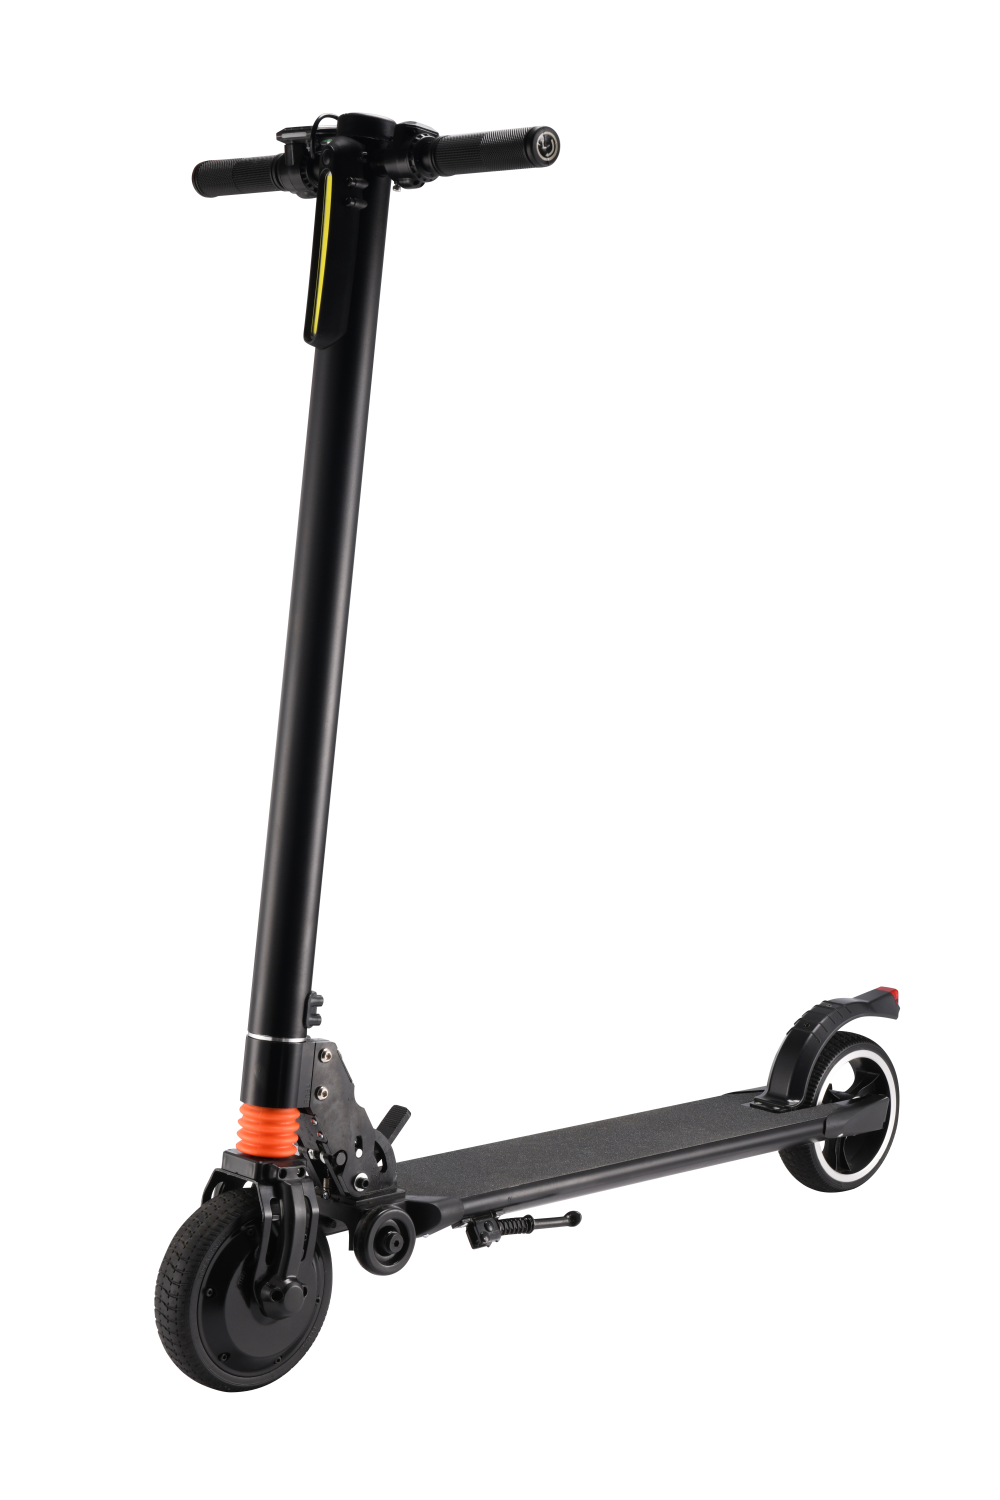 Scooter S8